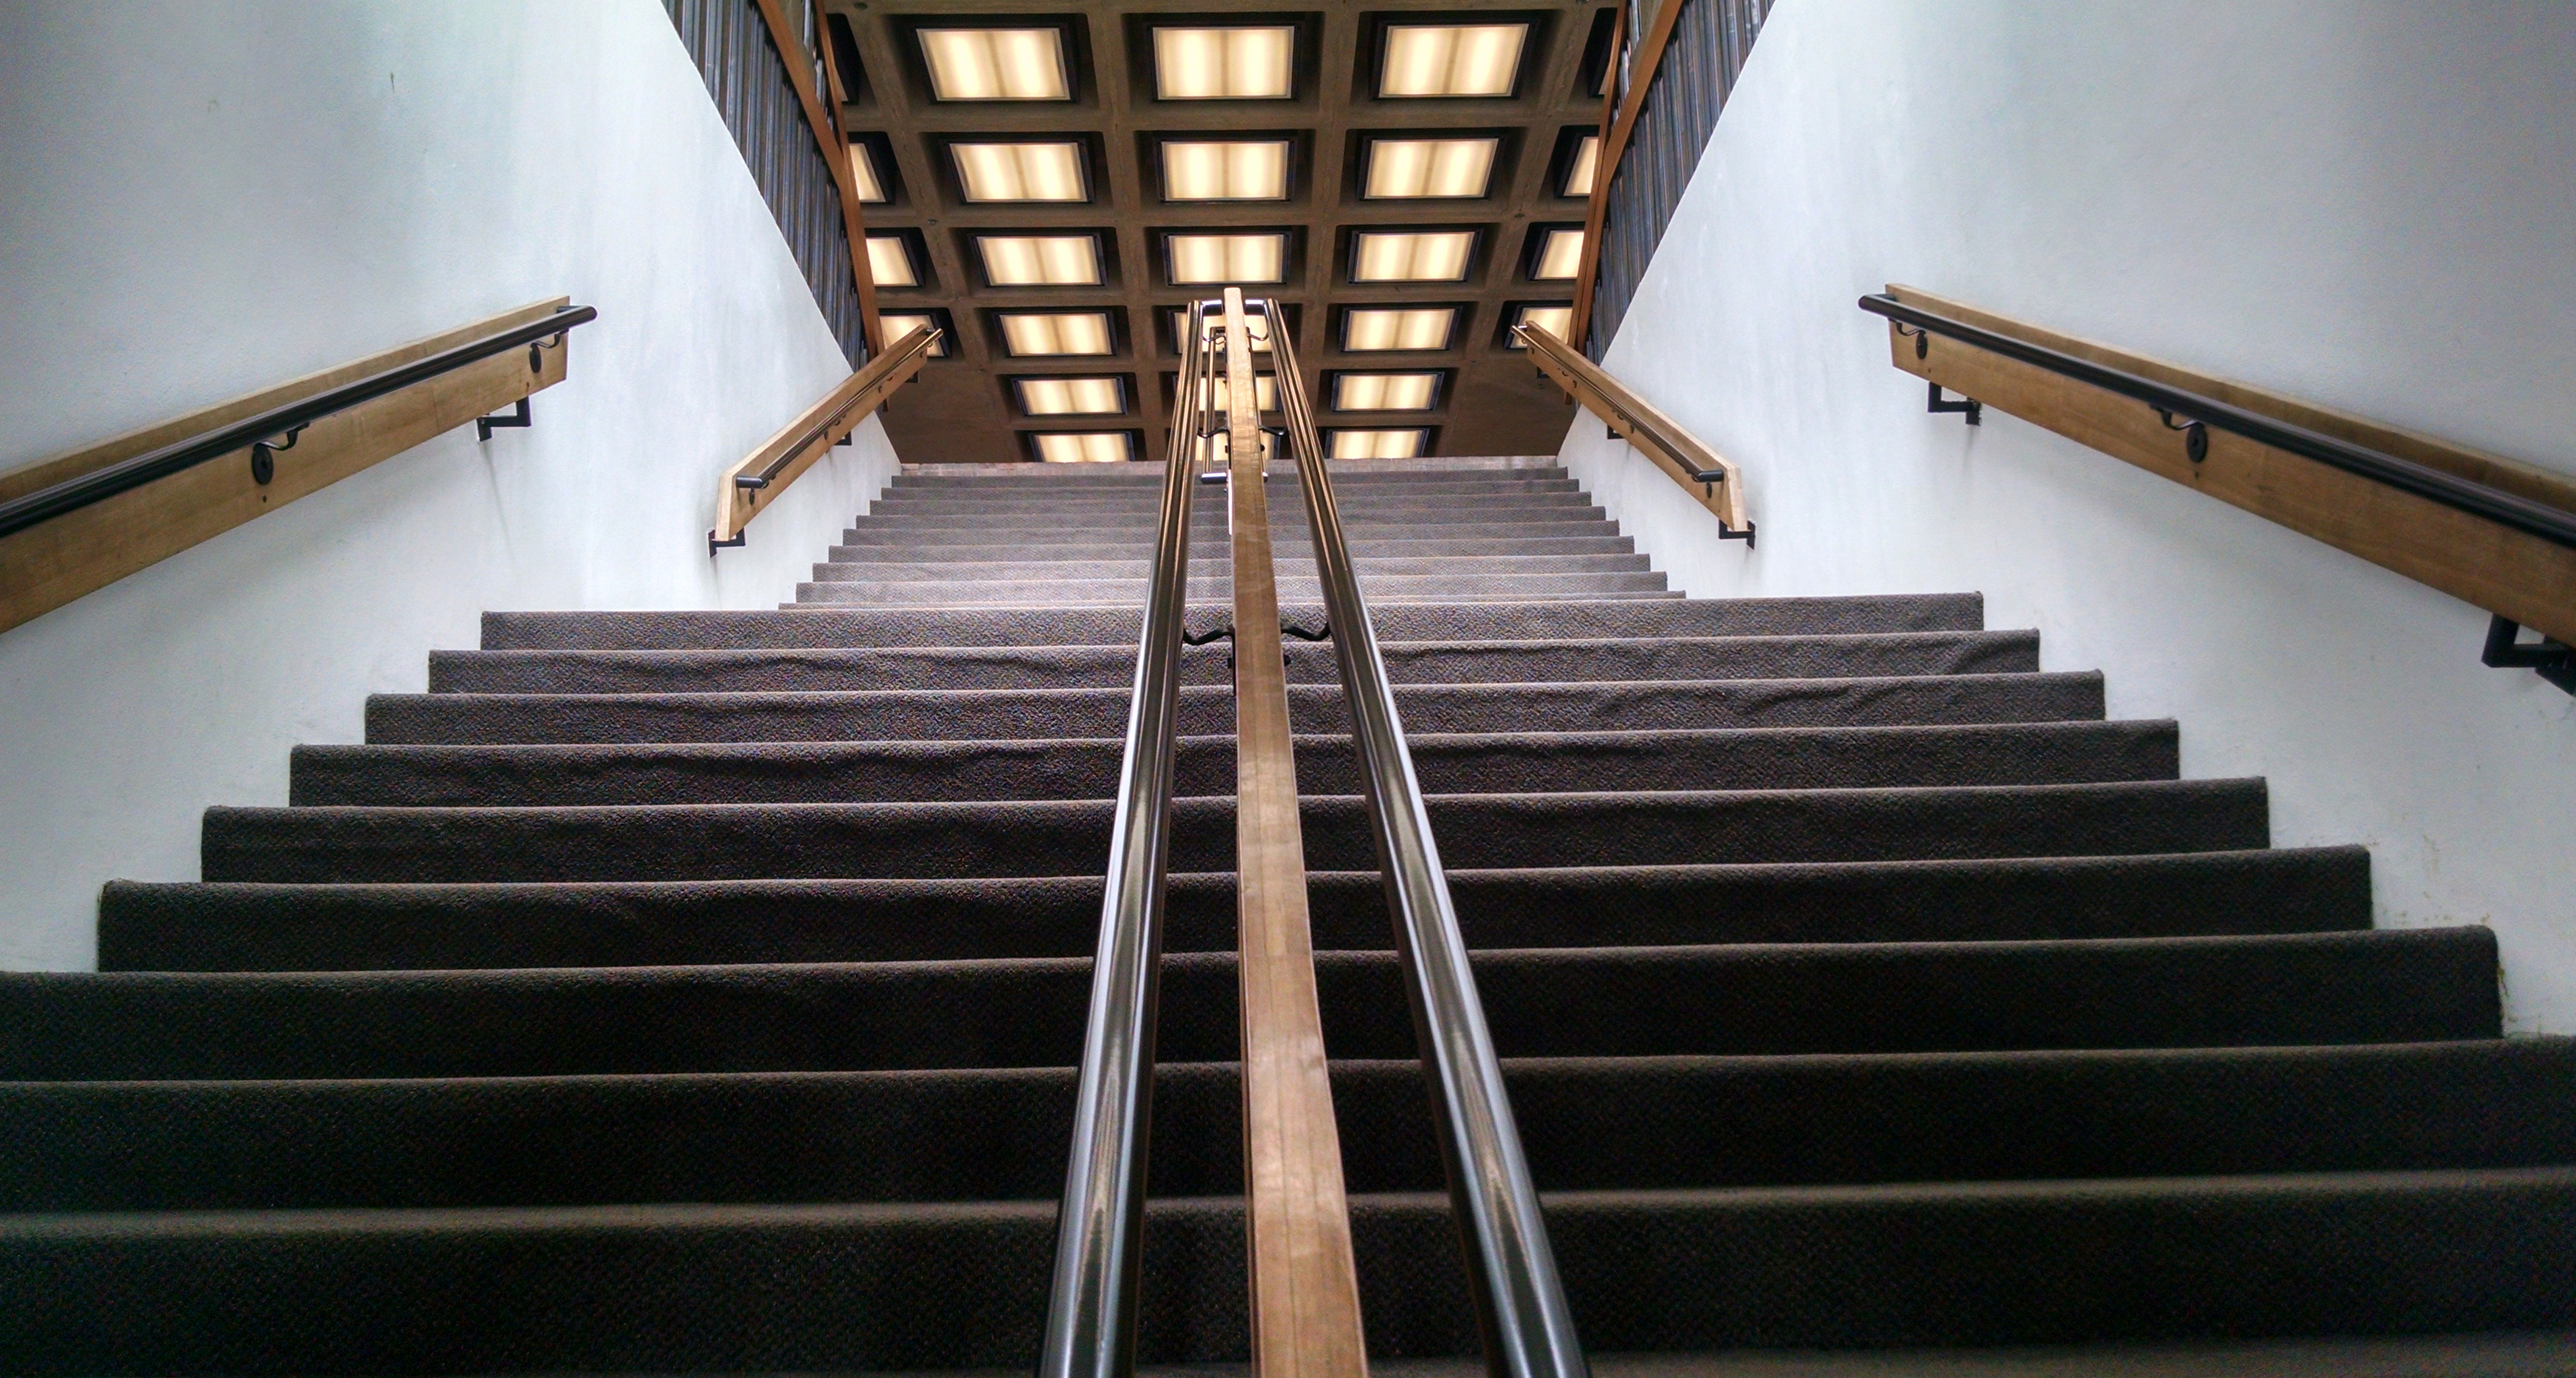 These stairs, familiar to Fermilab staff, connect the hall of oration with the hall of gustation. Photo: Valery Stanley, WDRS